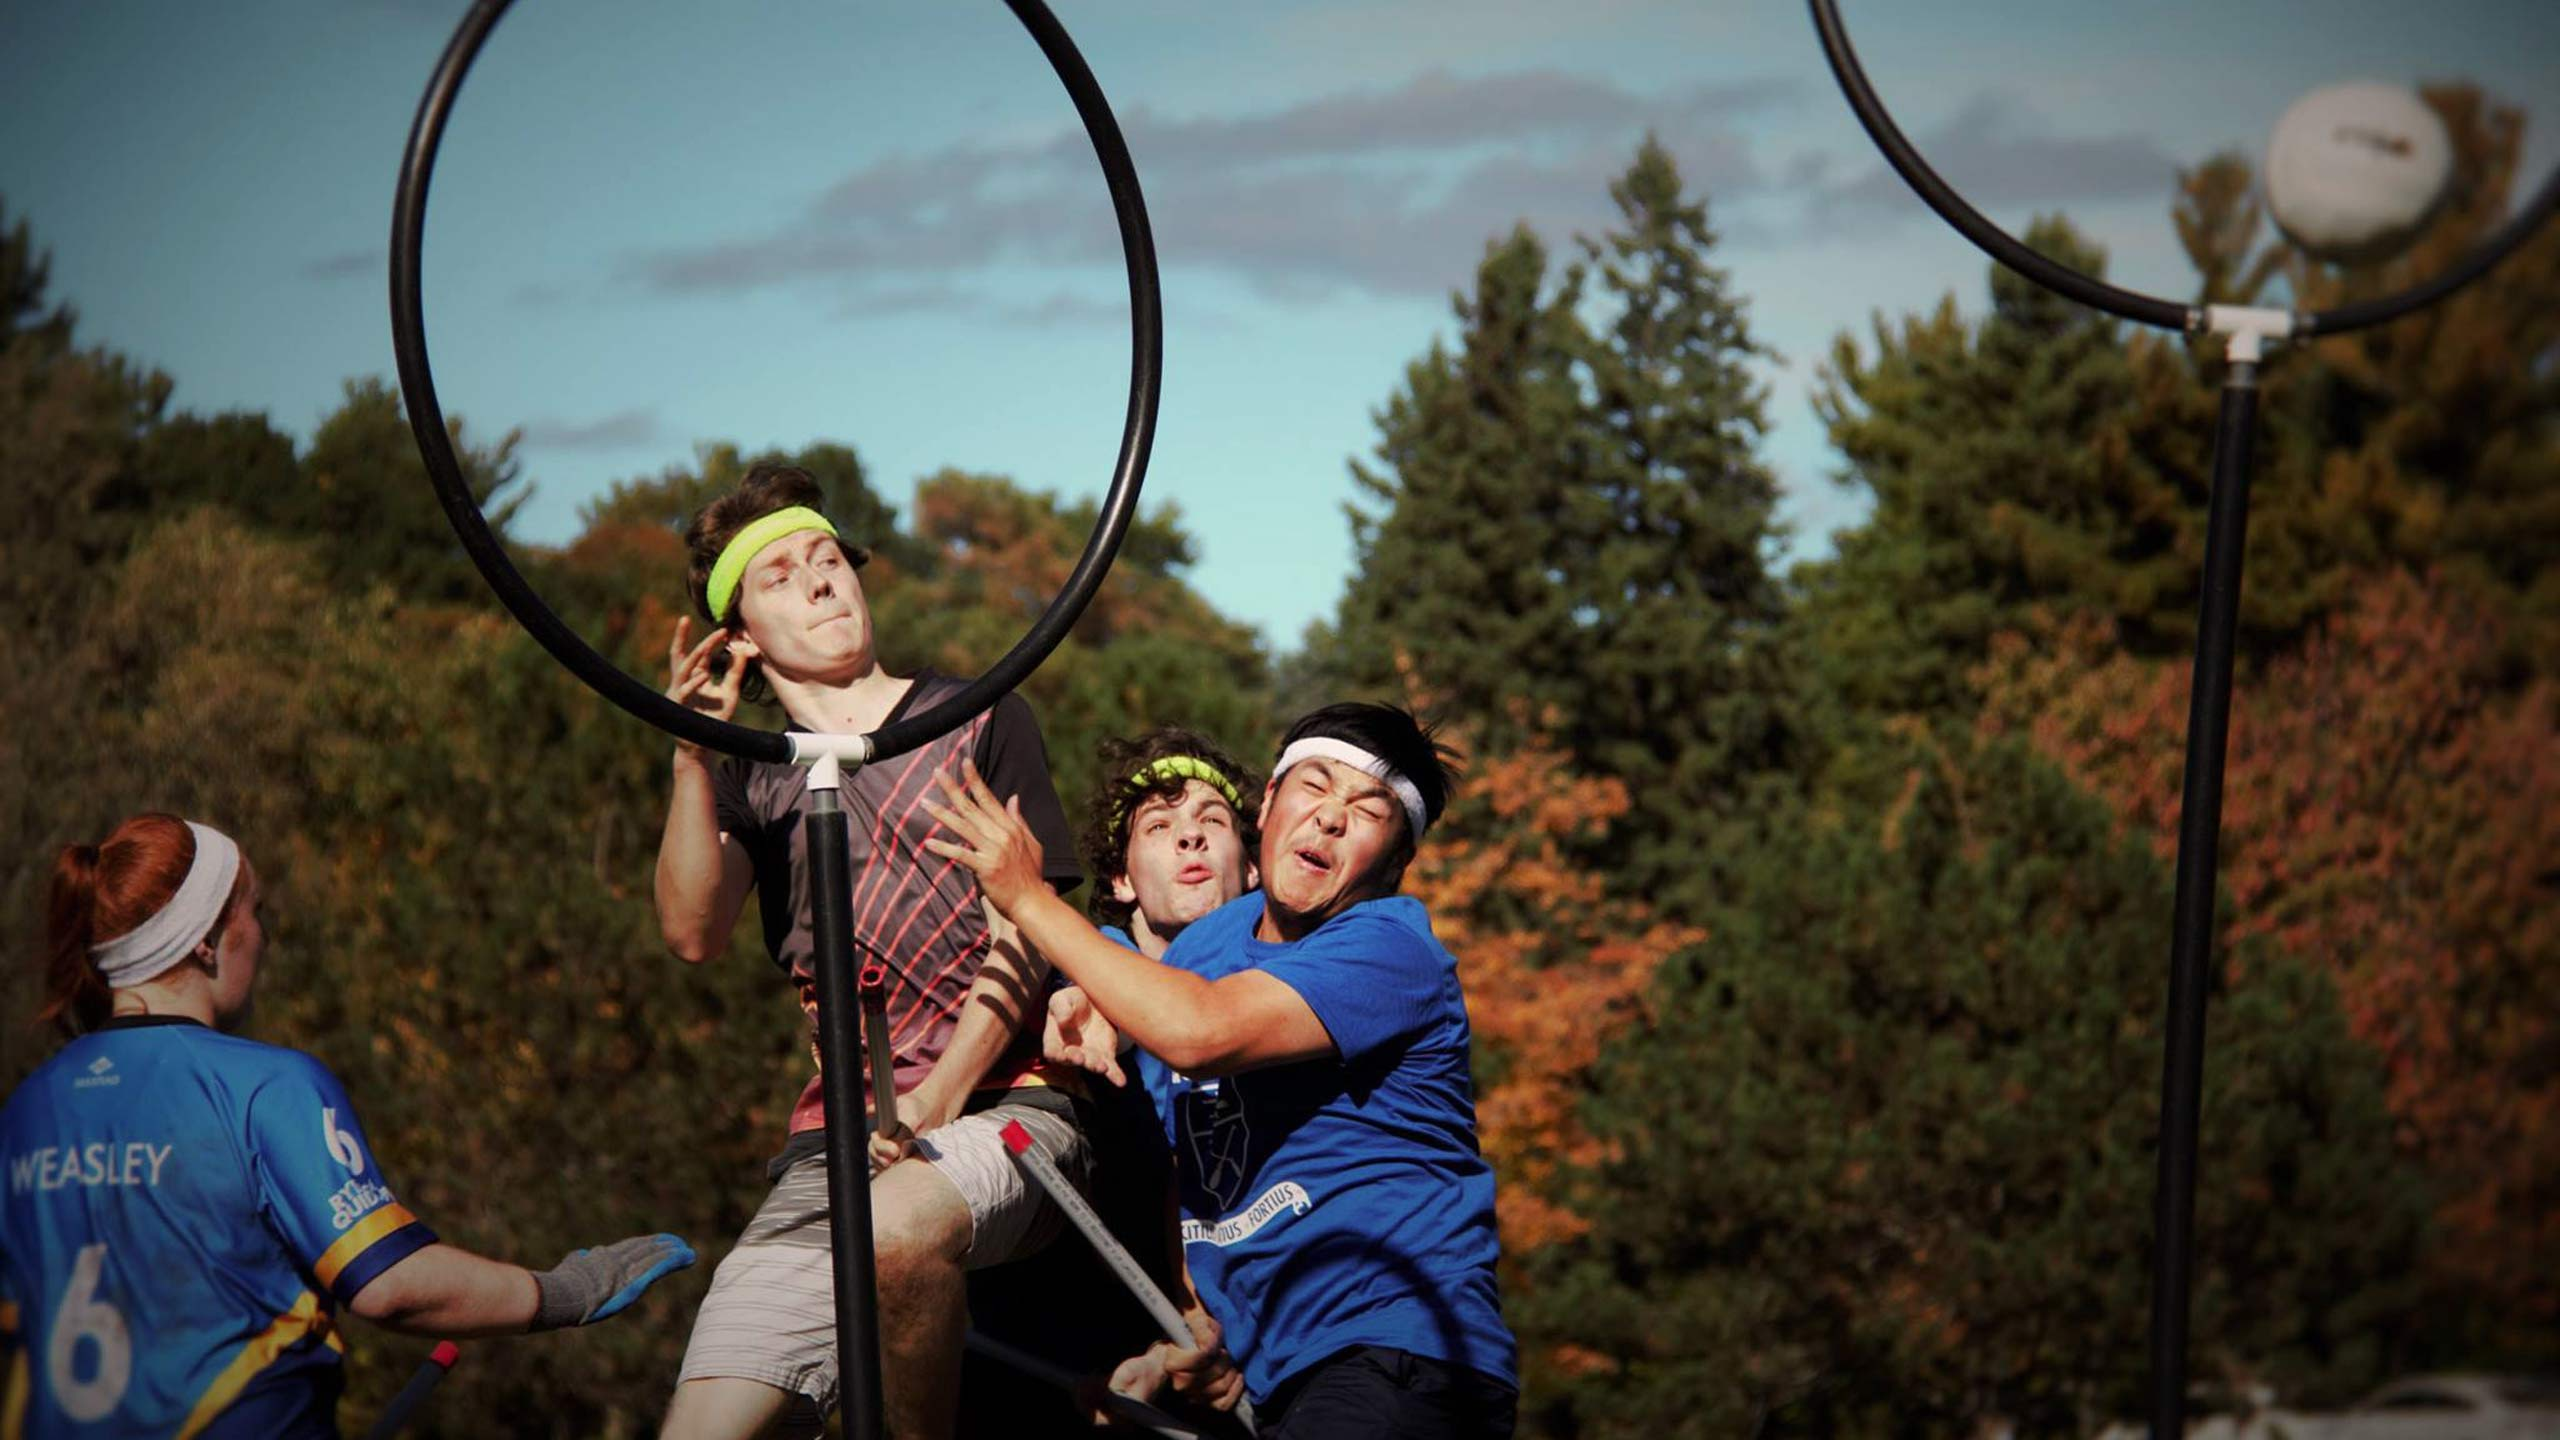 An epic shot of three quidditch players jumping up to hit a ball.